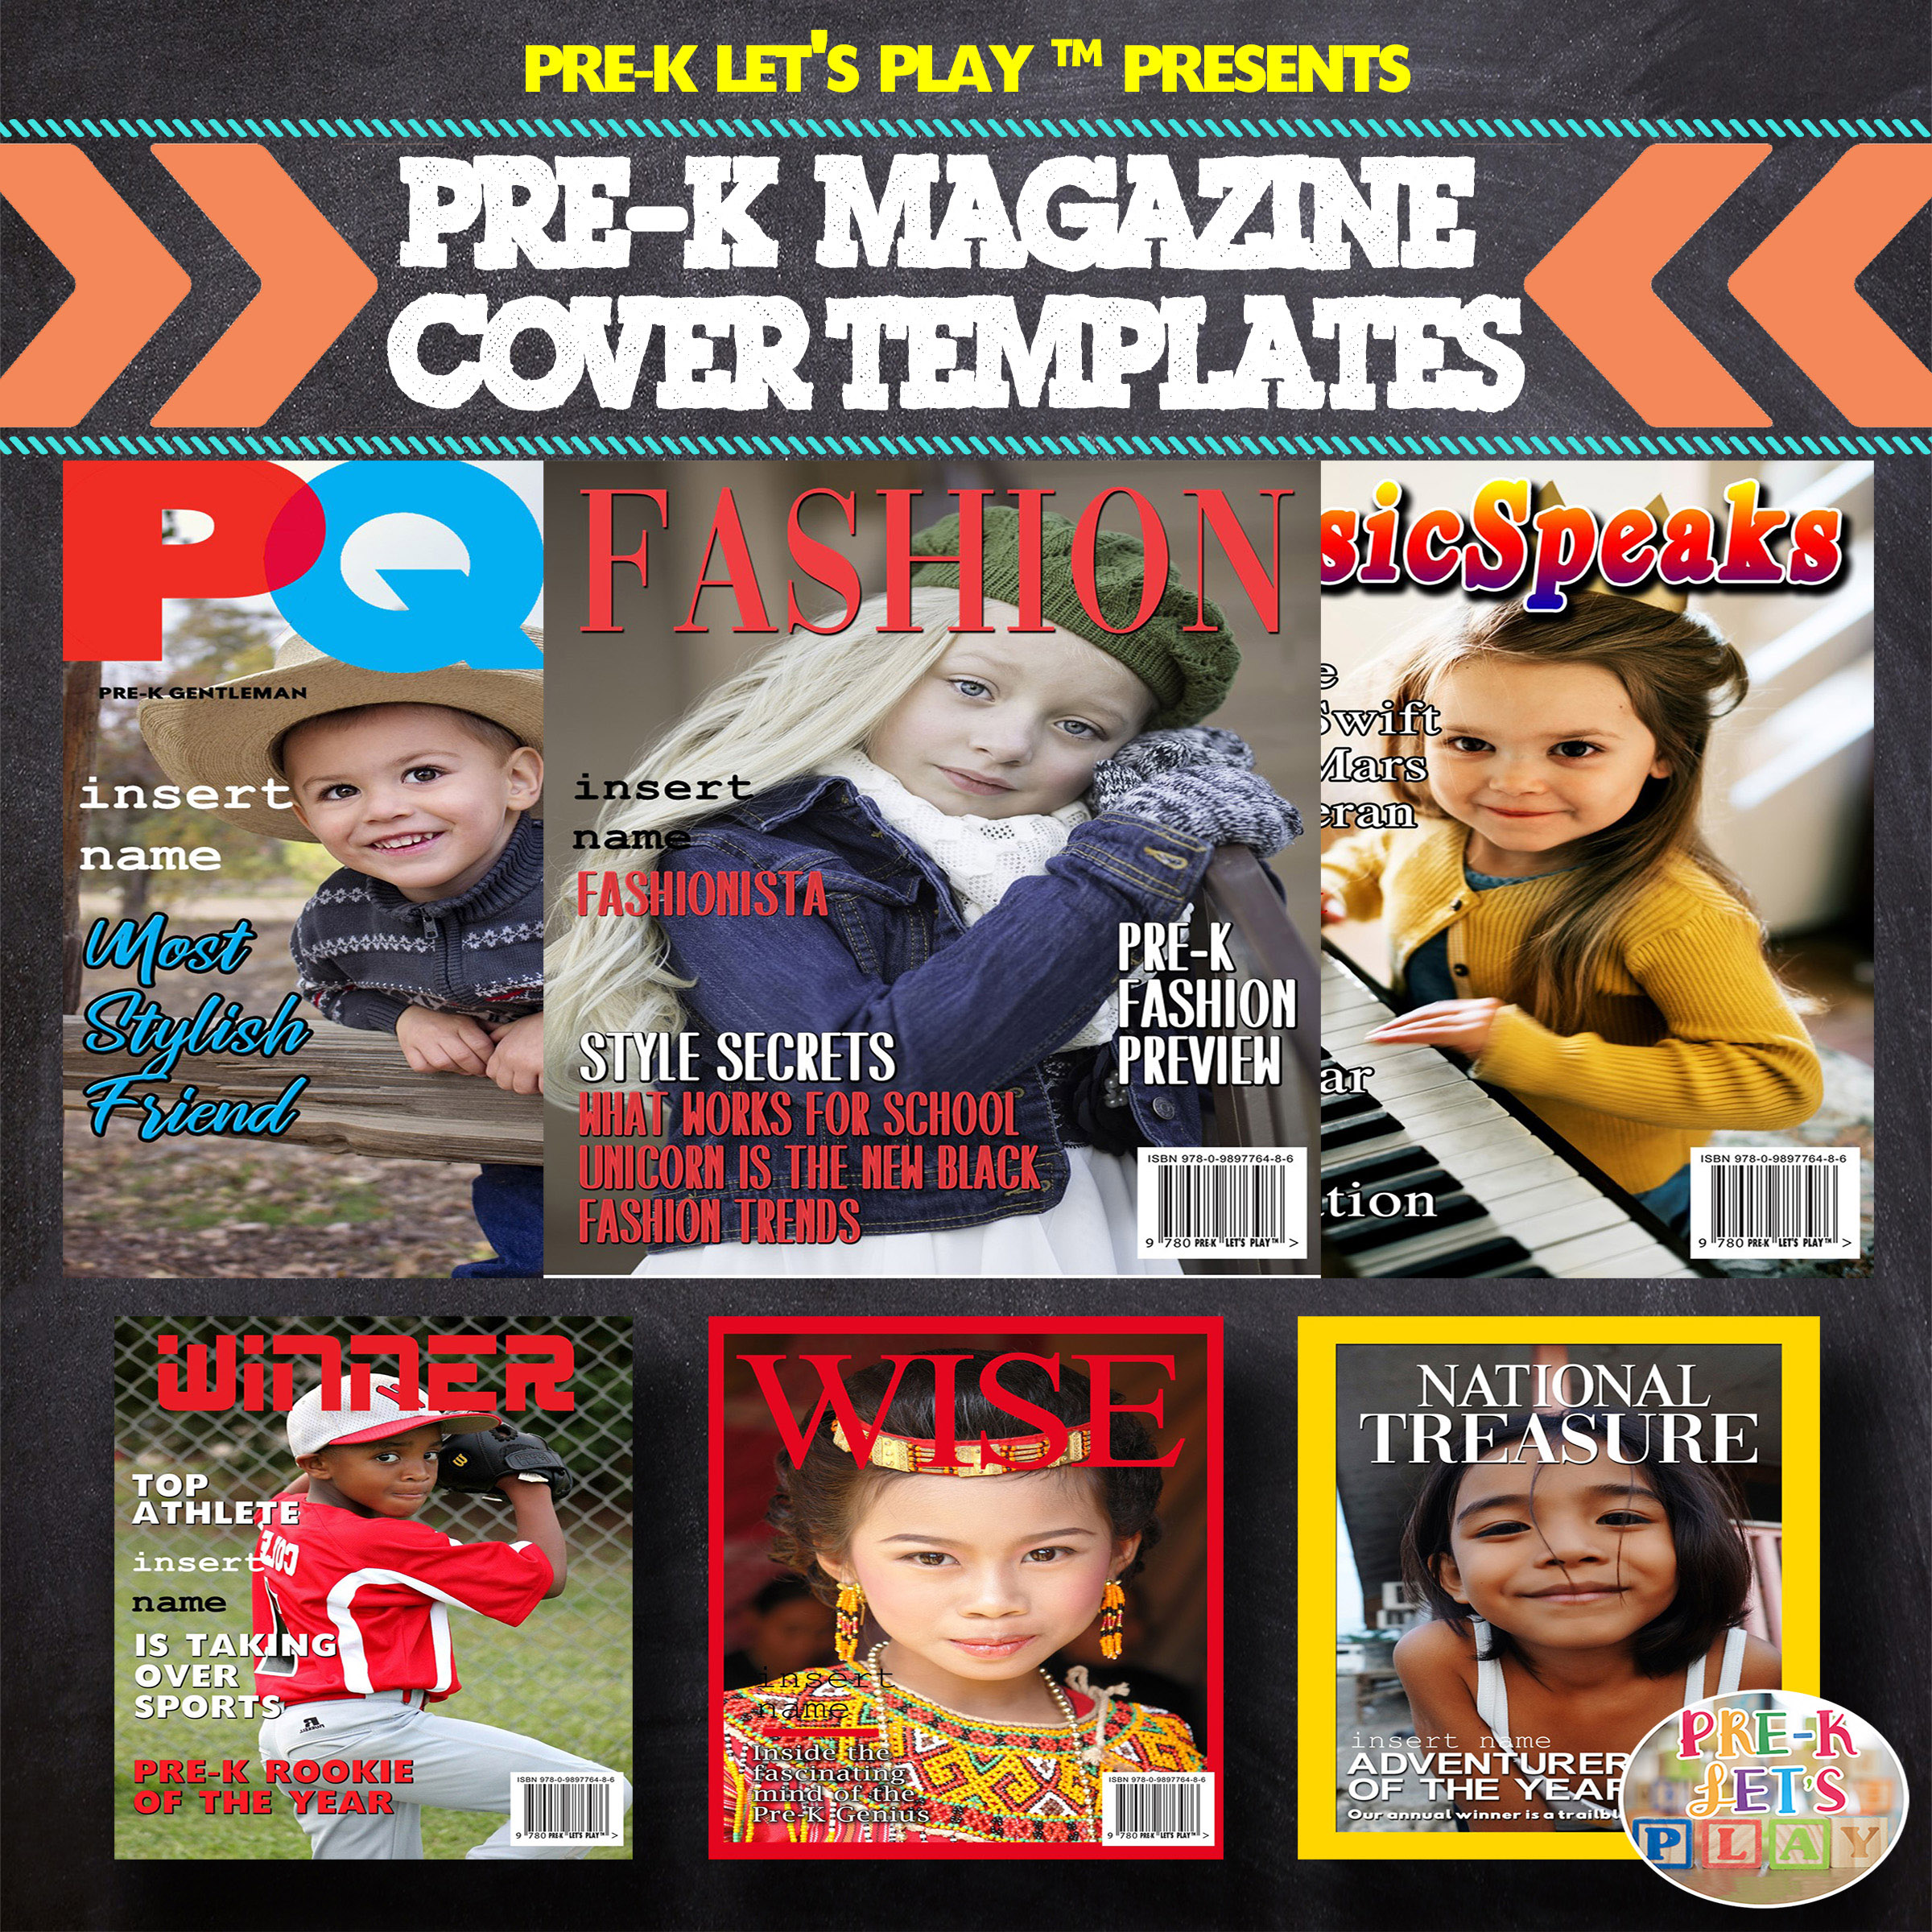 Make your own magazine covers of your students with these magazine cover templates.